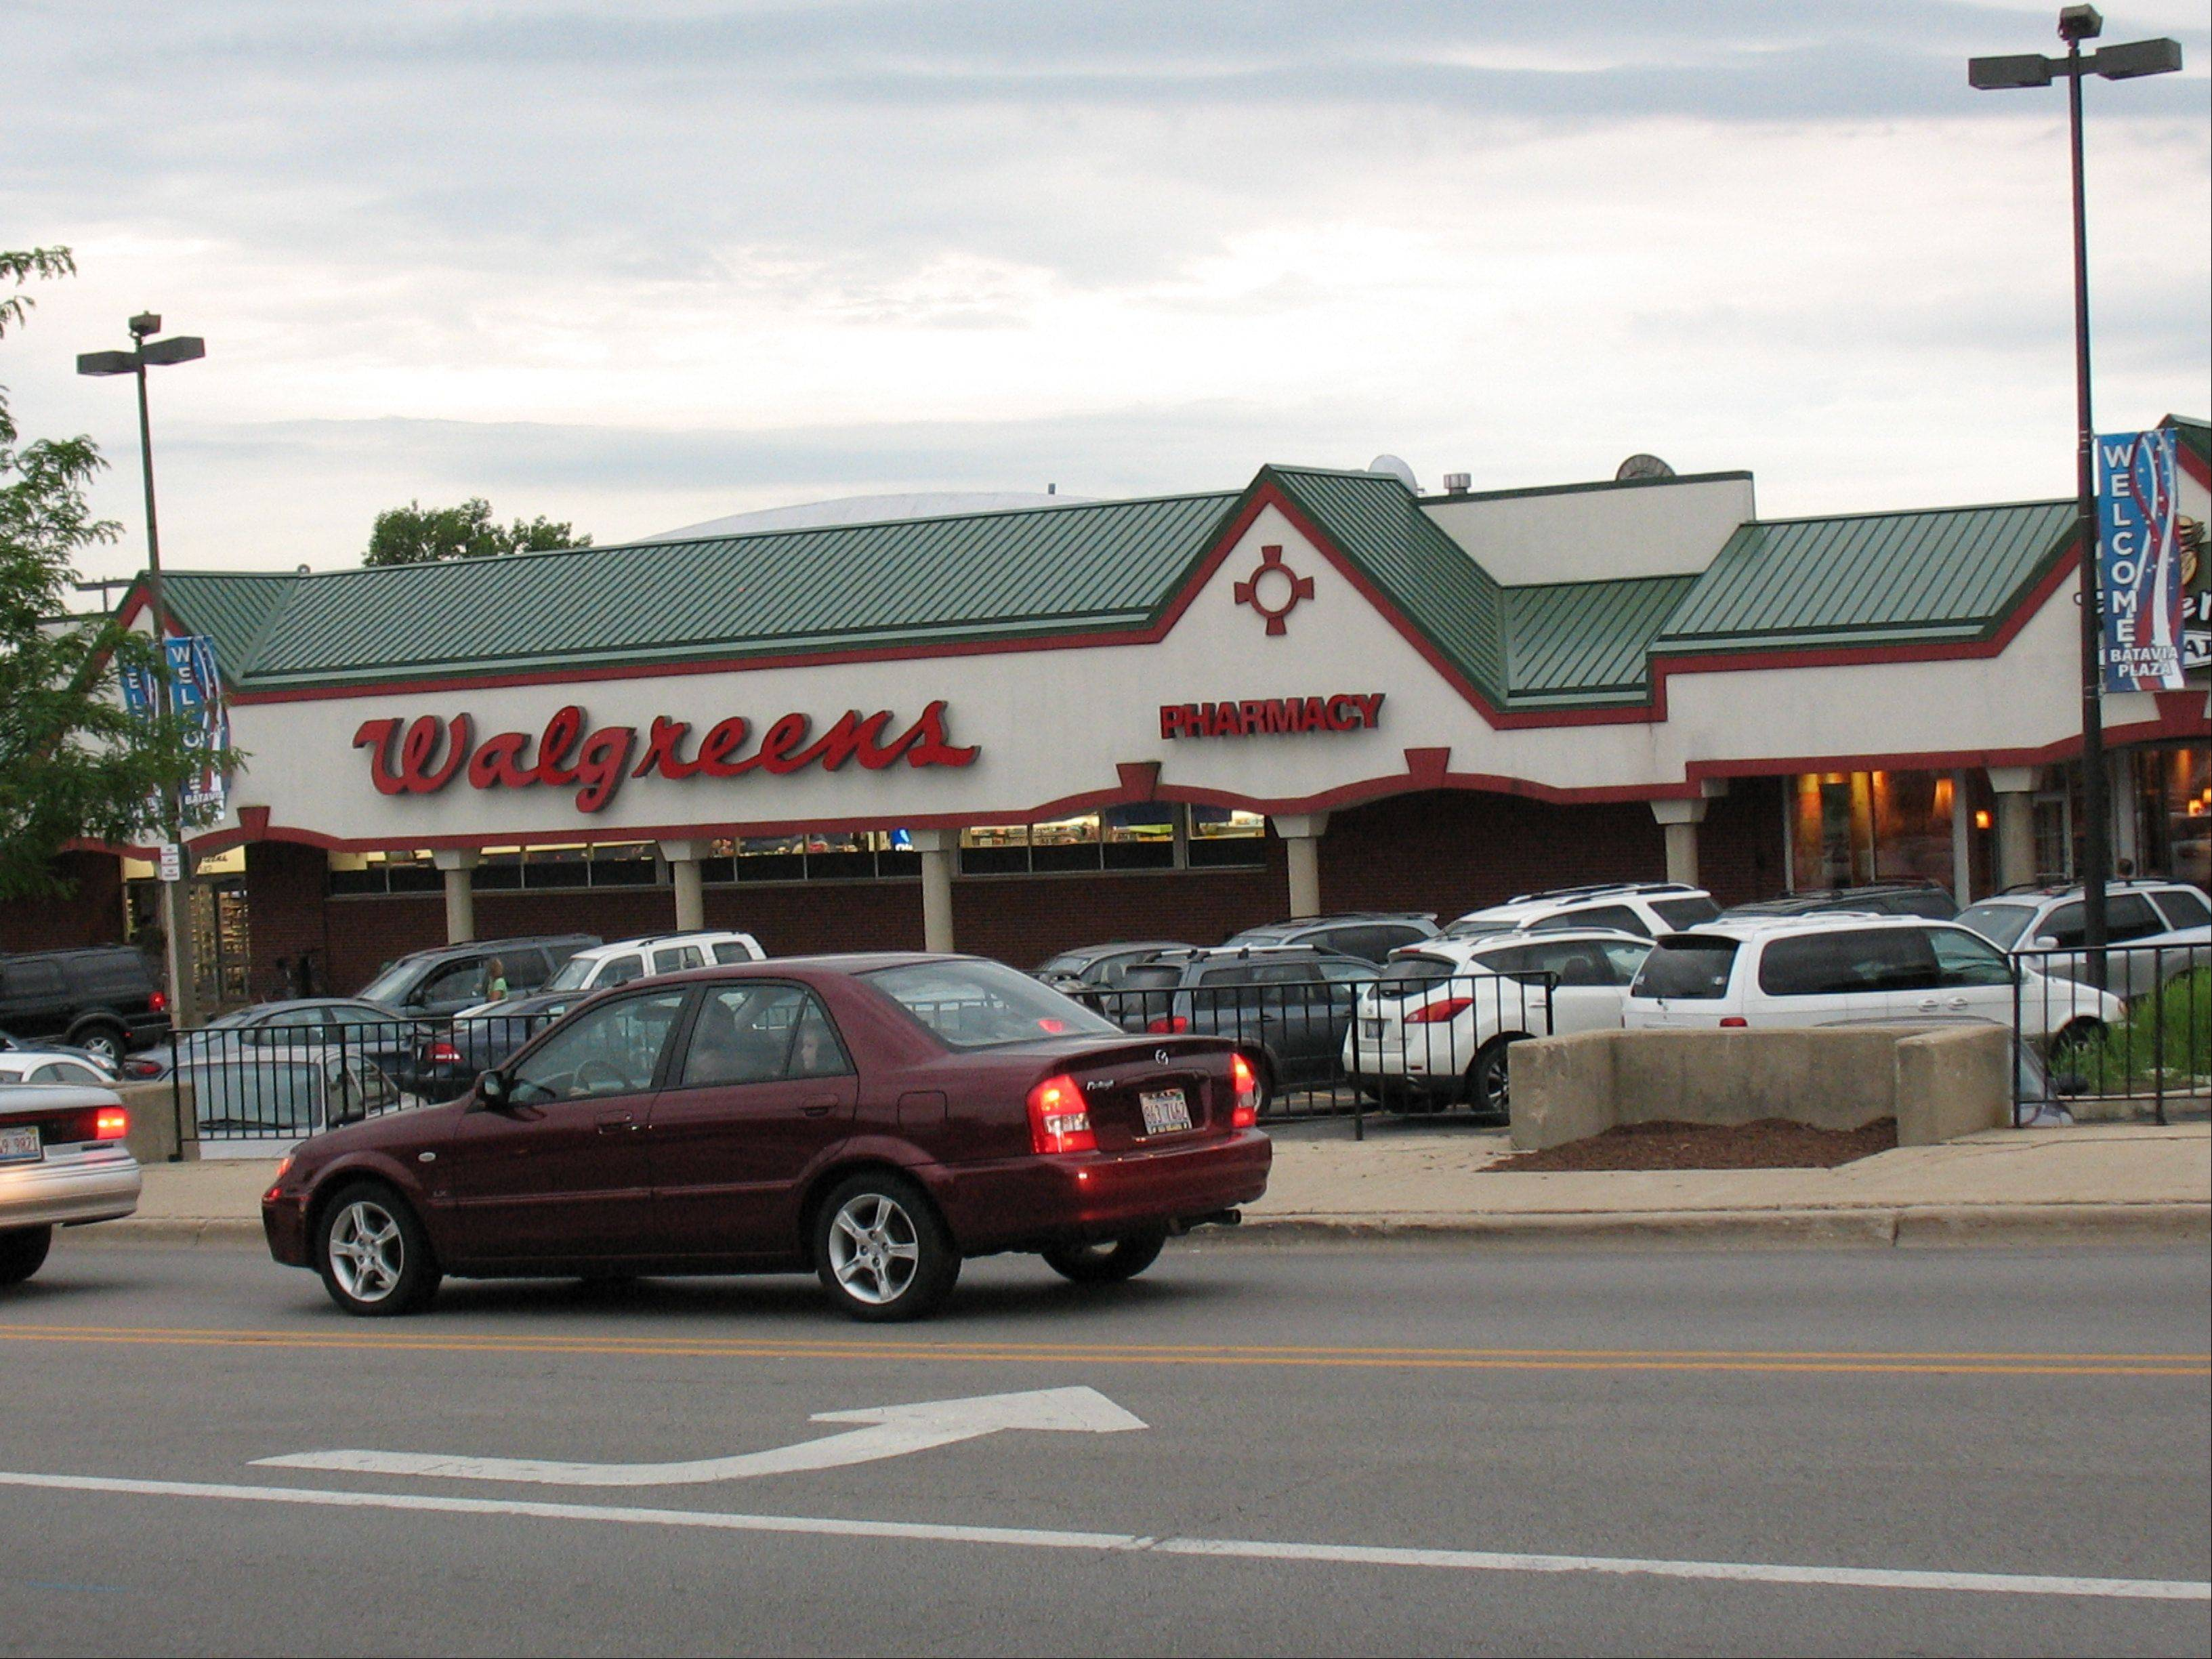 Walgreens would like to build a replacement store to the east in downtown Batavia. The city council has tentatively agreed to $1.143 million in financial aid.